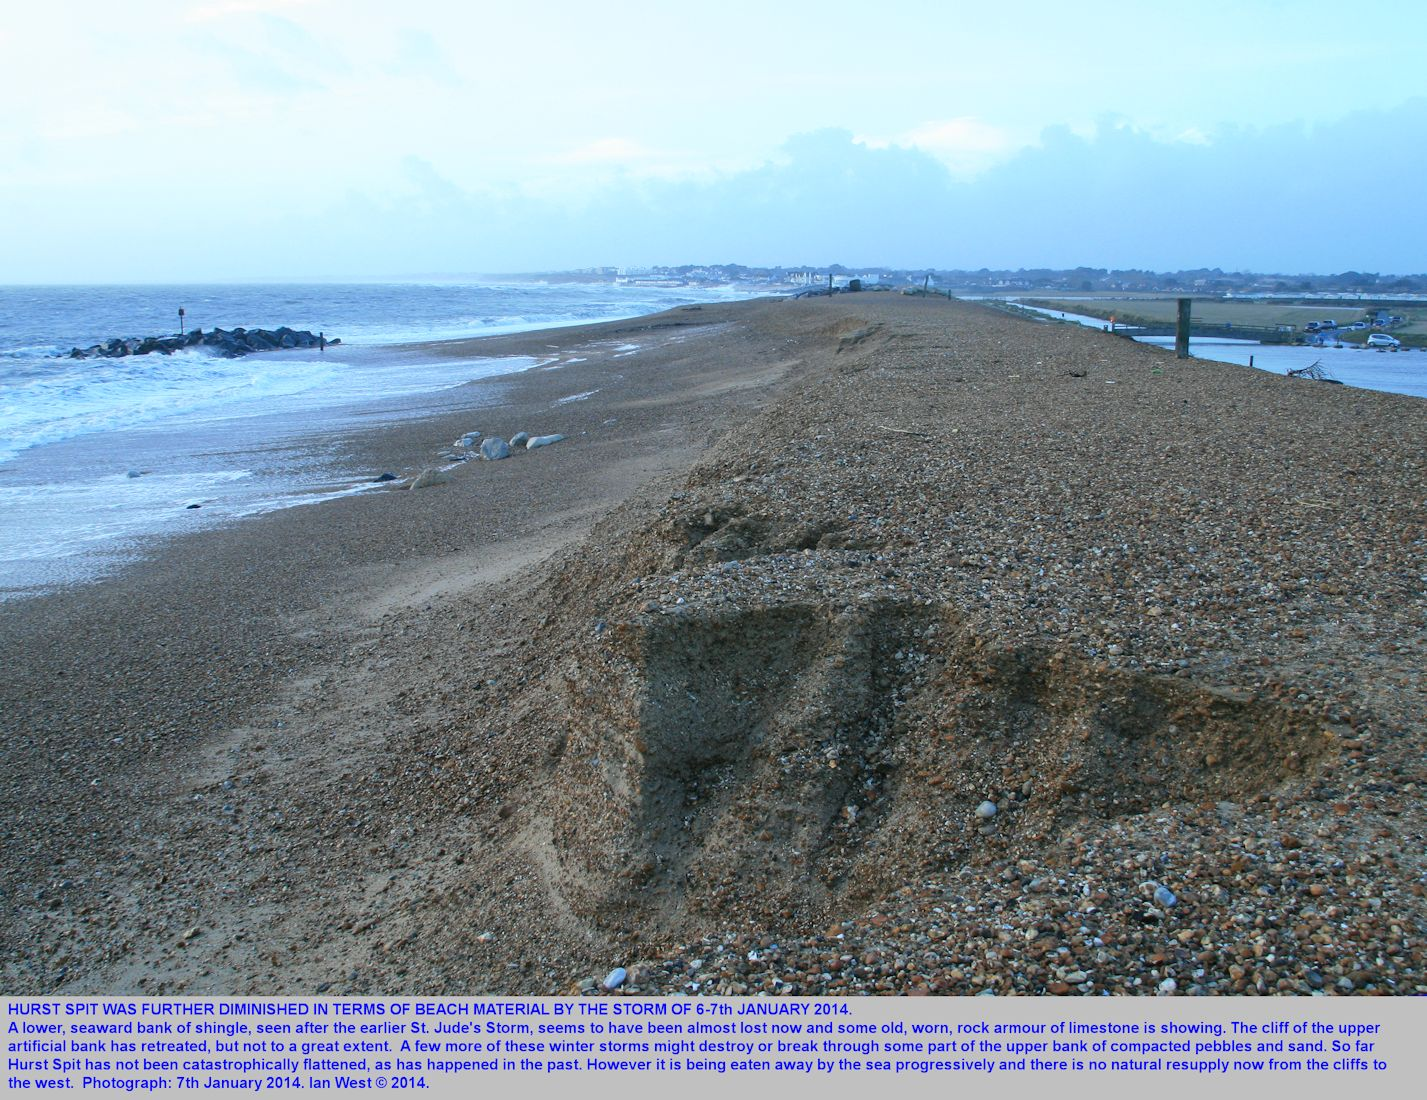 Hurst Spit, Hampshire, further diminished by loss of beach material after the storm of the 6 to the 7th January, 2014